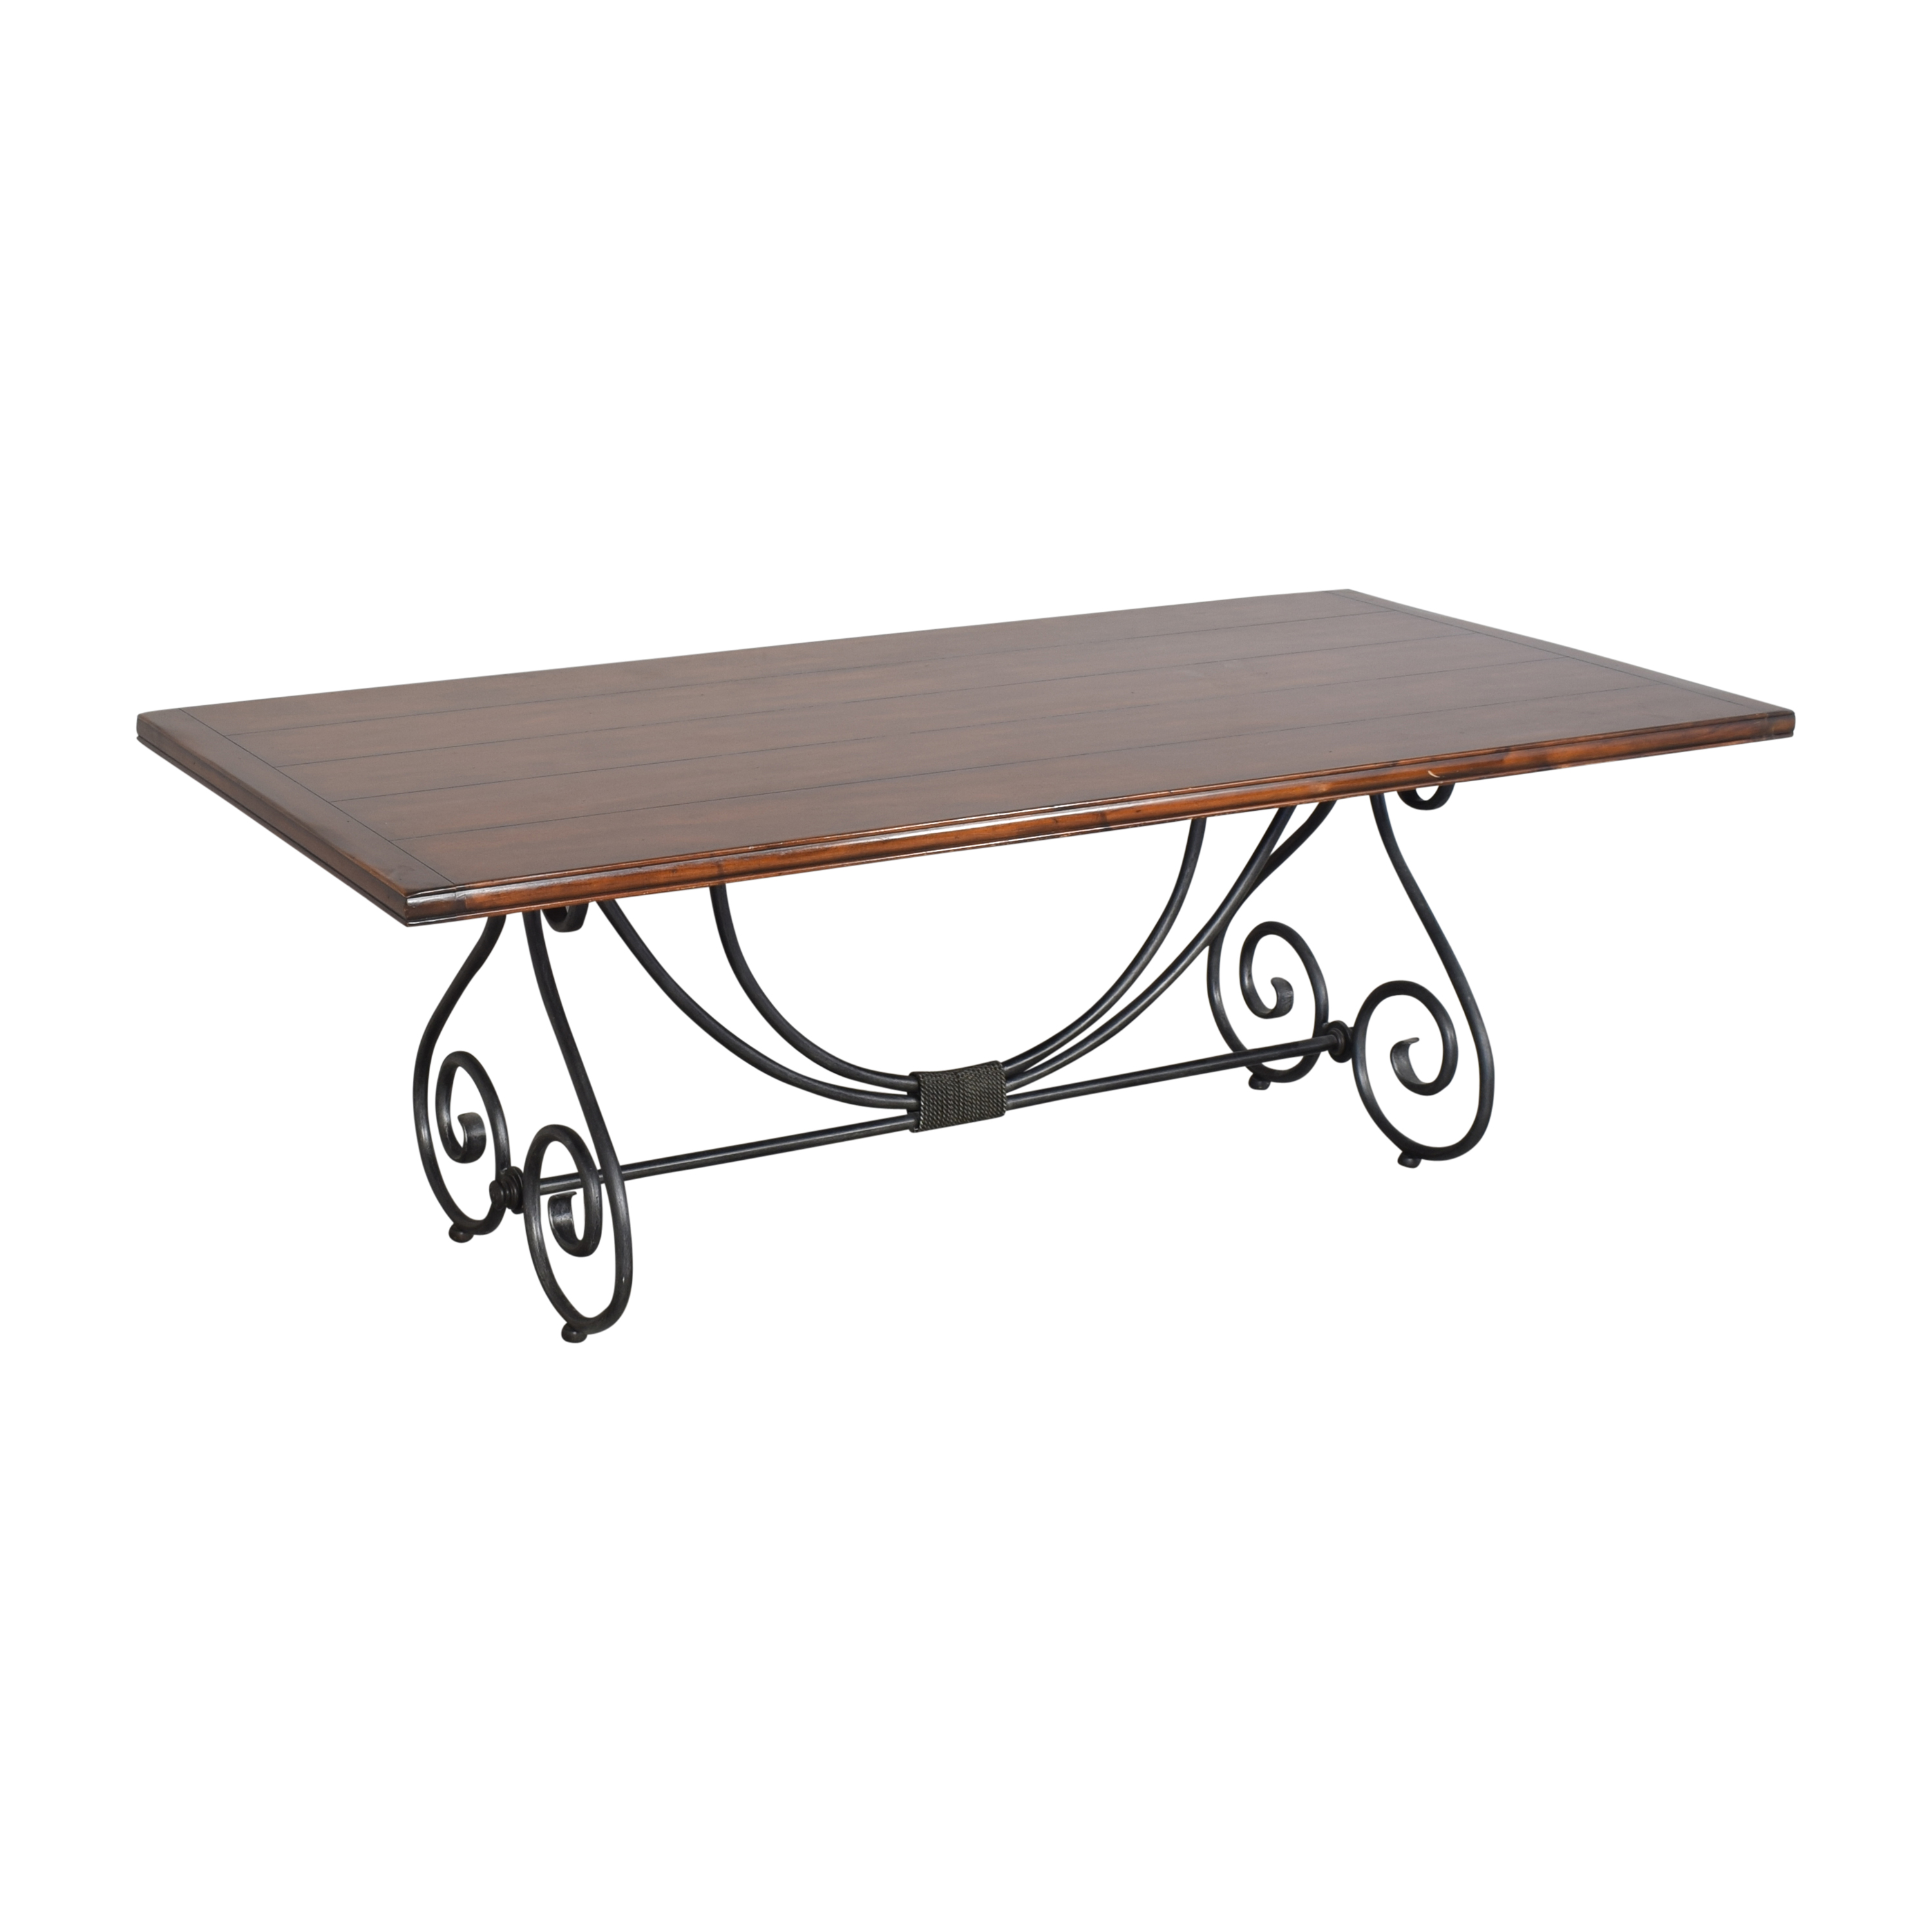 Theodore Alexander Theodore Alexander Rustic Dining Table nyc